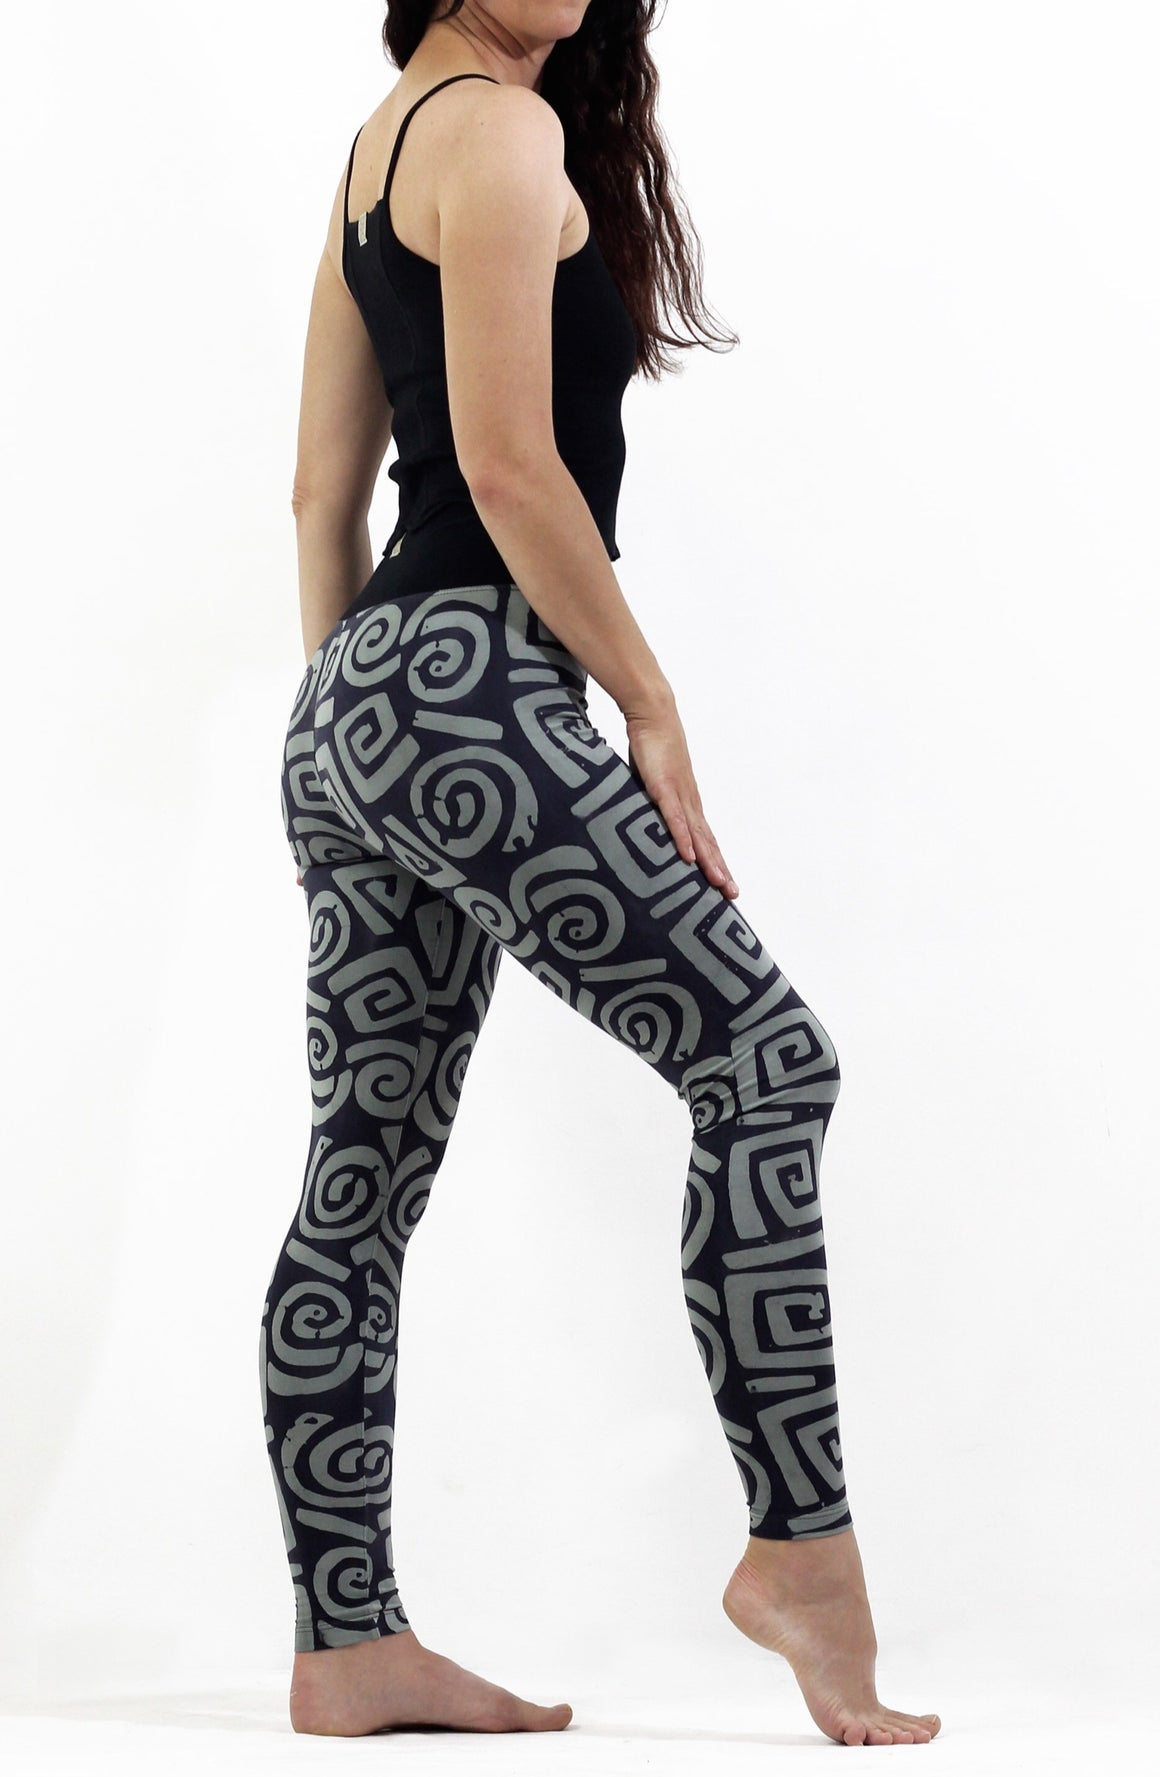 BlackTop Gray Mean - Leggings